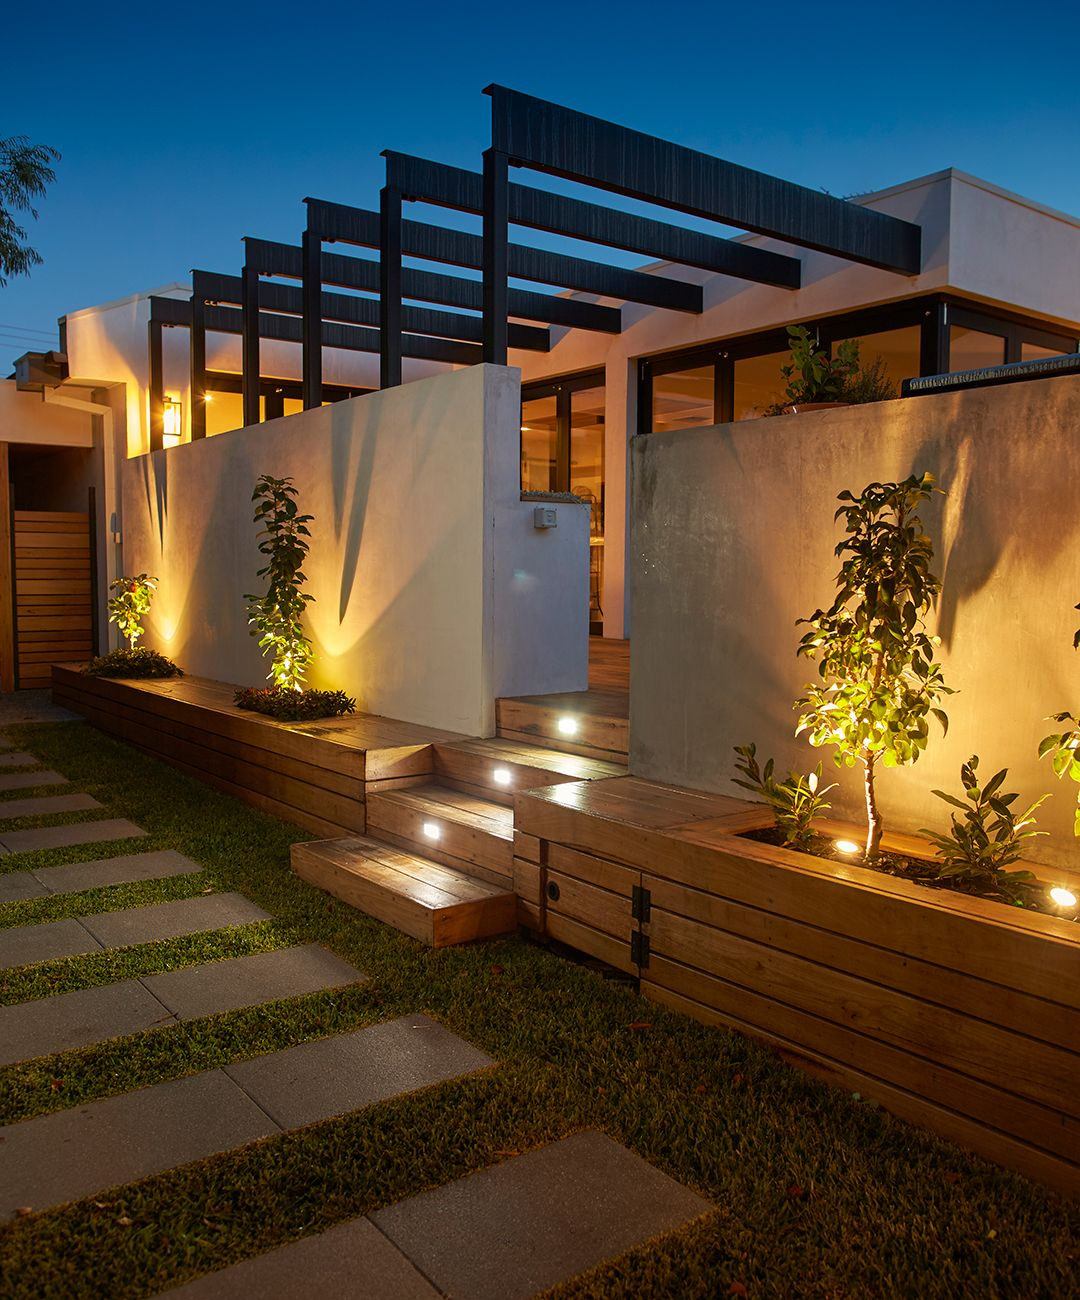 Make your home look good from day to night with outdoor